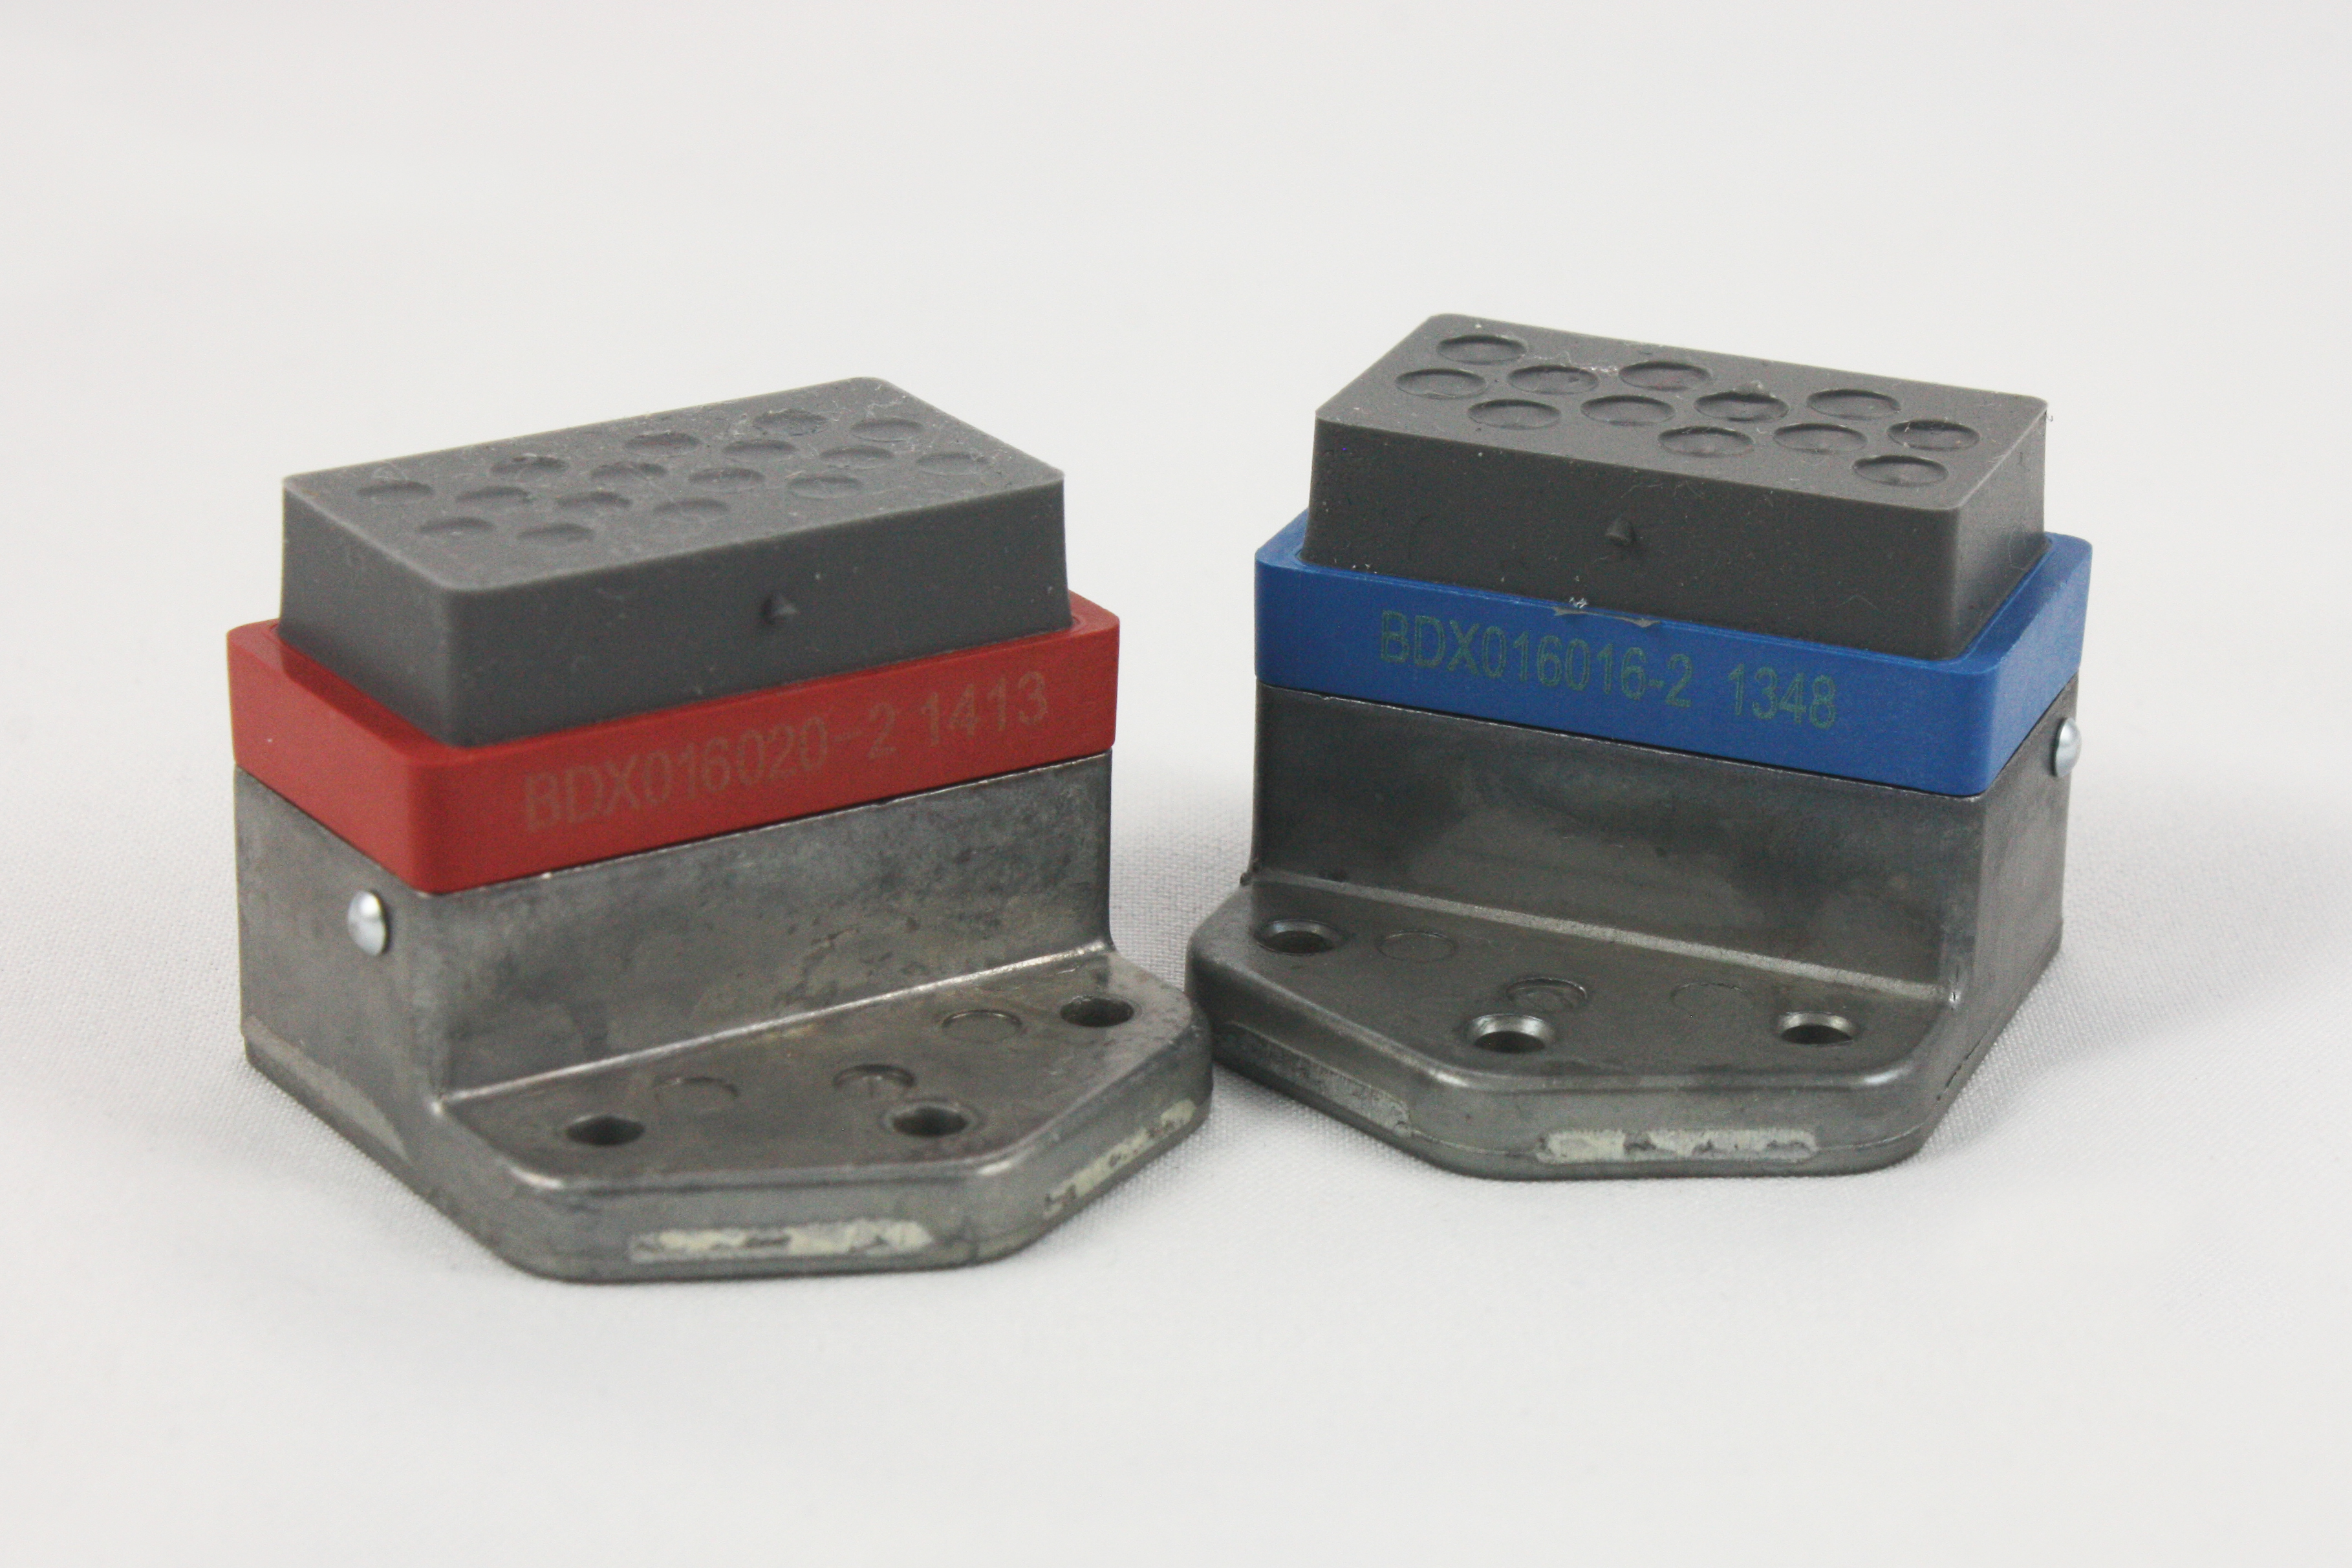 Ground Blocks, Terminal and Junction Modules